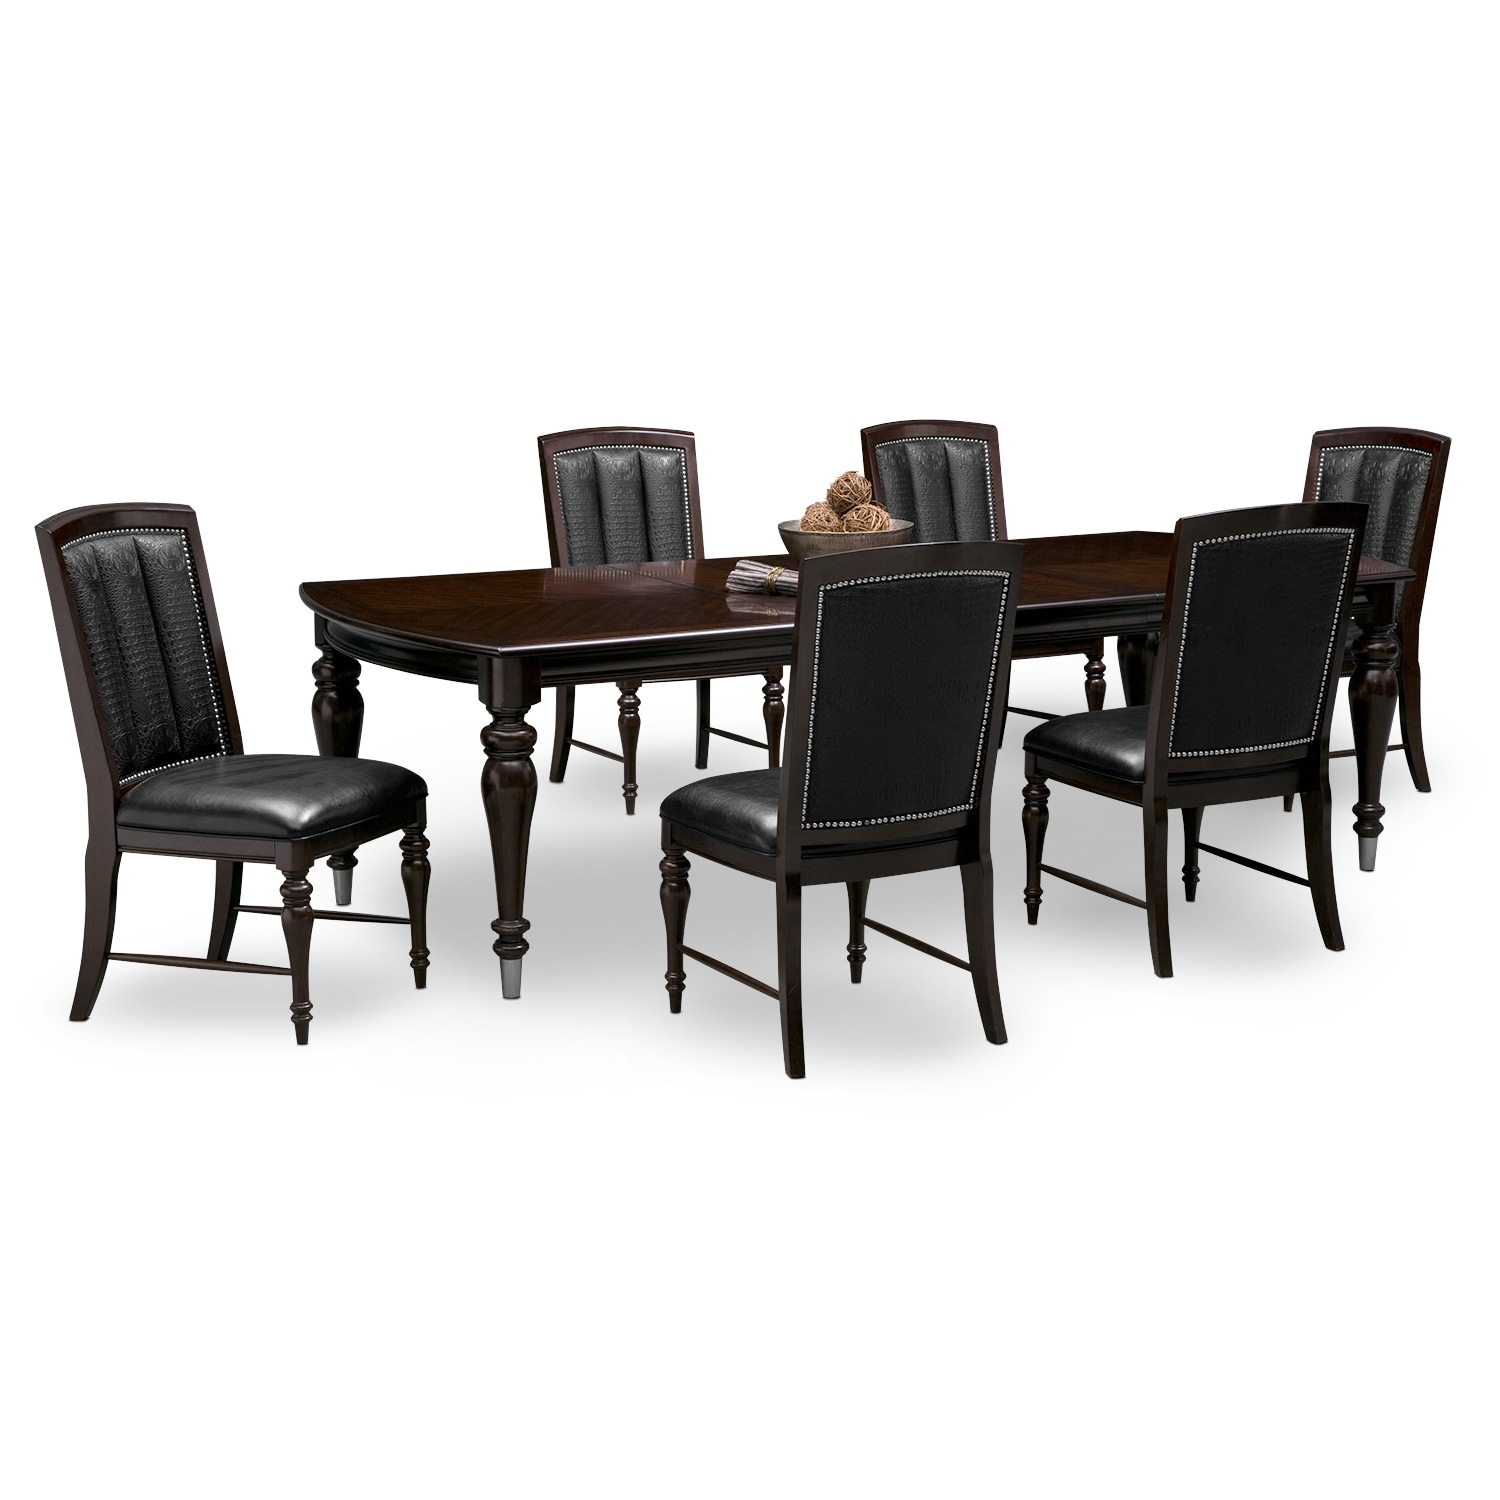 Dining Room Furniture - Esquire 7 Pc. Dining Room